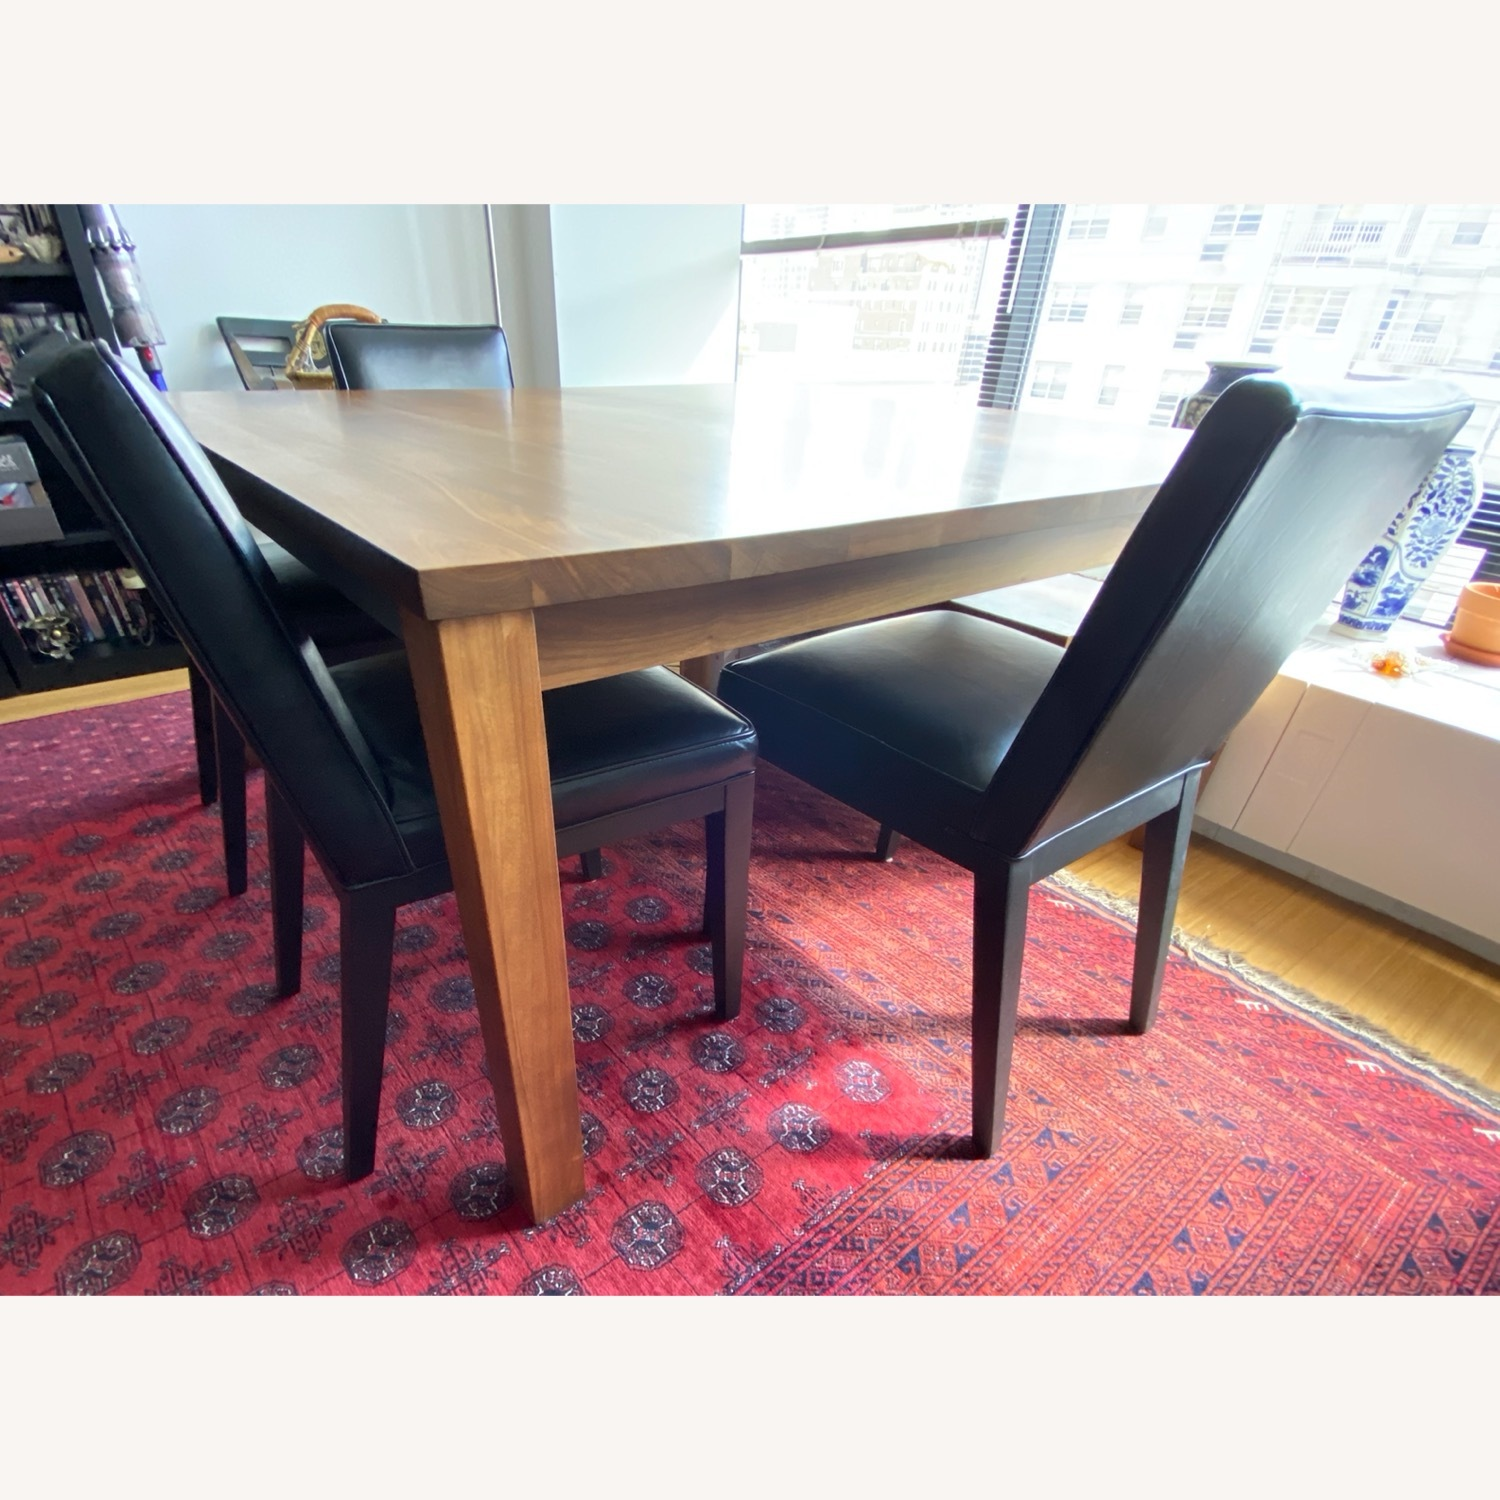 Room & Board Solid Walnut Dining Table - image-3